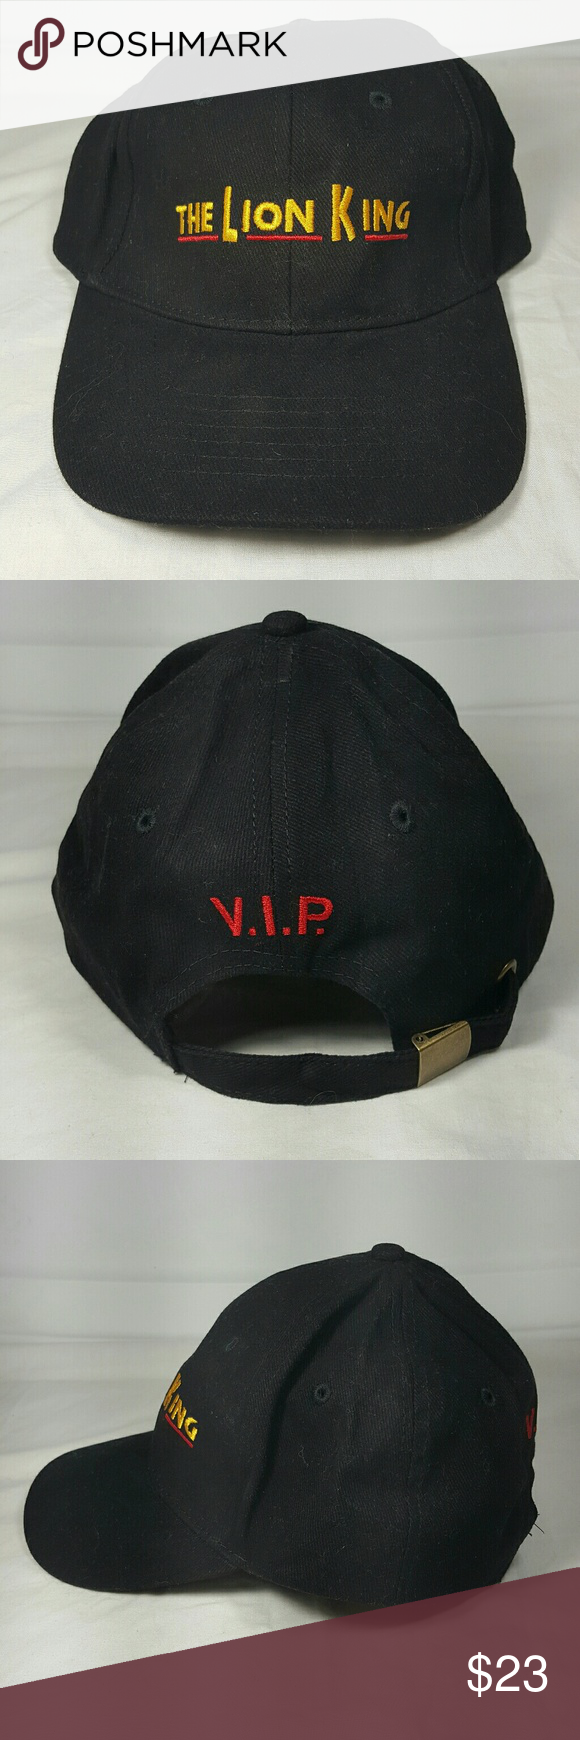 The Lion King Vip Baseball Cap Dad Hat Adjustable Excellent Condition Worn Once The Lion King Vip Black Base Dad Hats Black Baseball Cap Disney Accessories